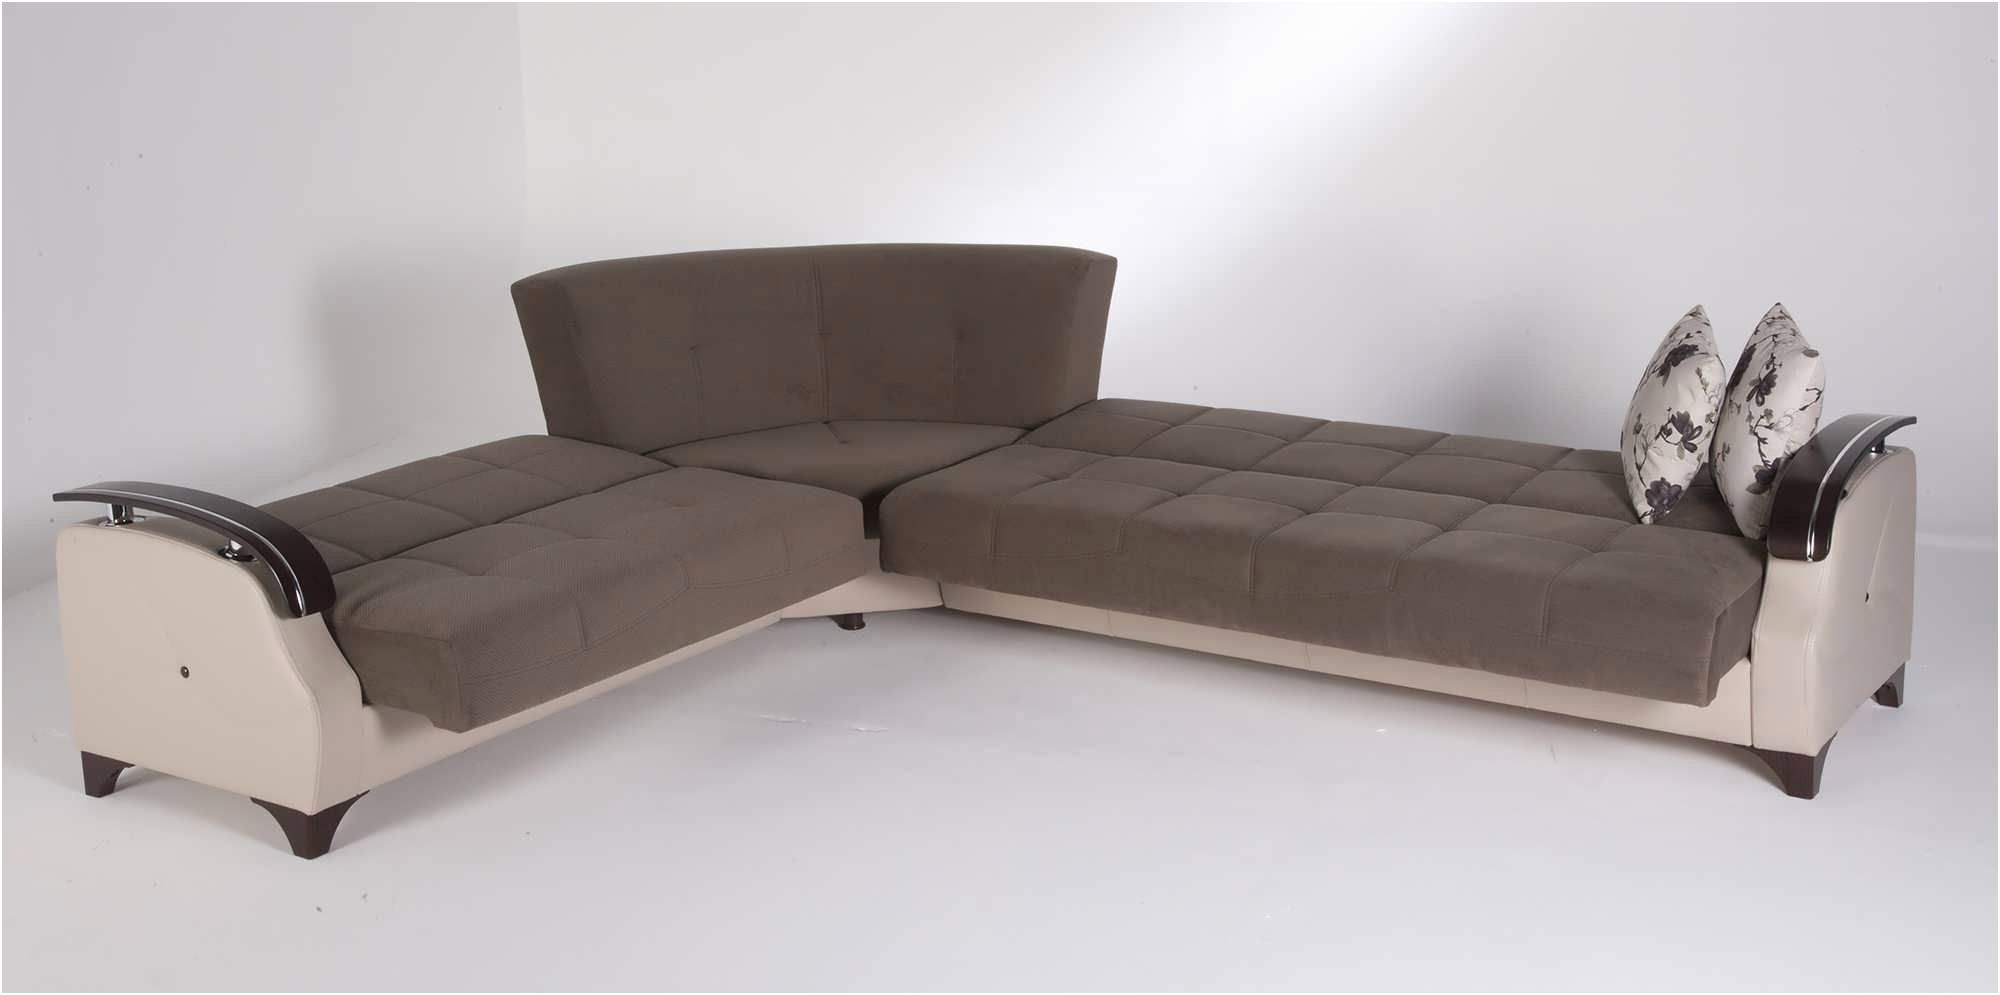 2018 Sectionalofas Formallpaces Vancouver Modernofa With Recliner For Vancouver Bc Canada Sectional Sofas (Gallery 5 of 20)